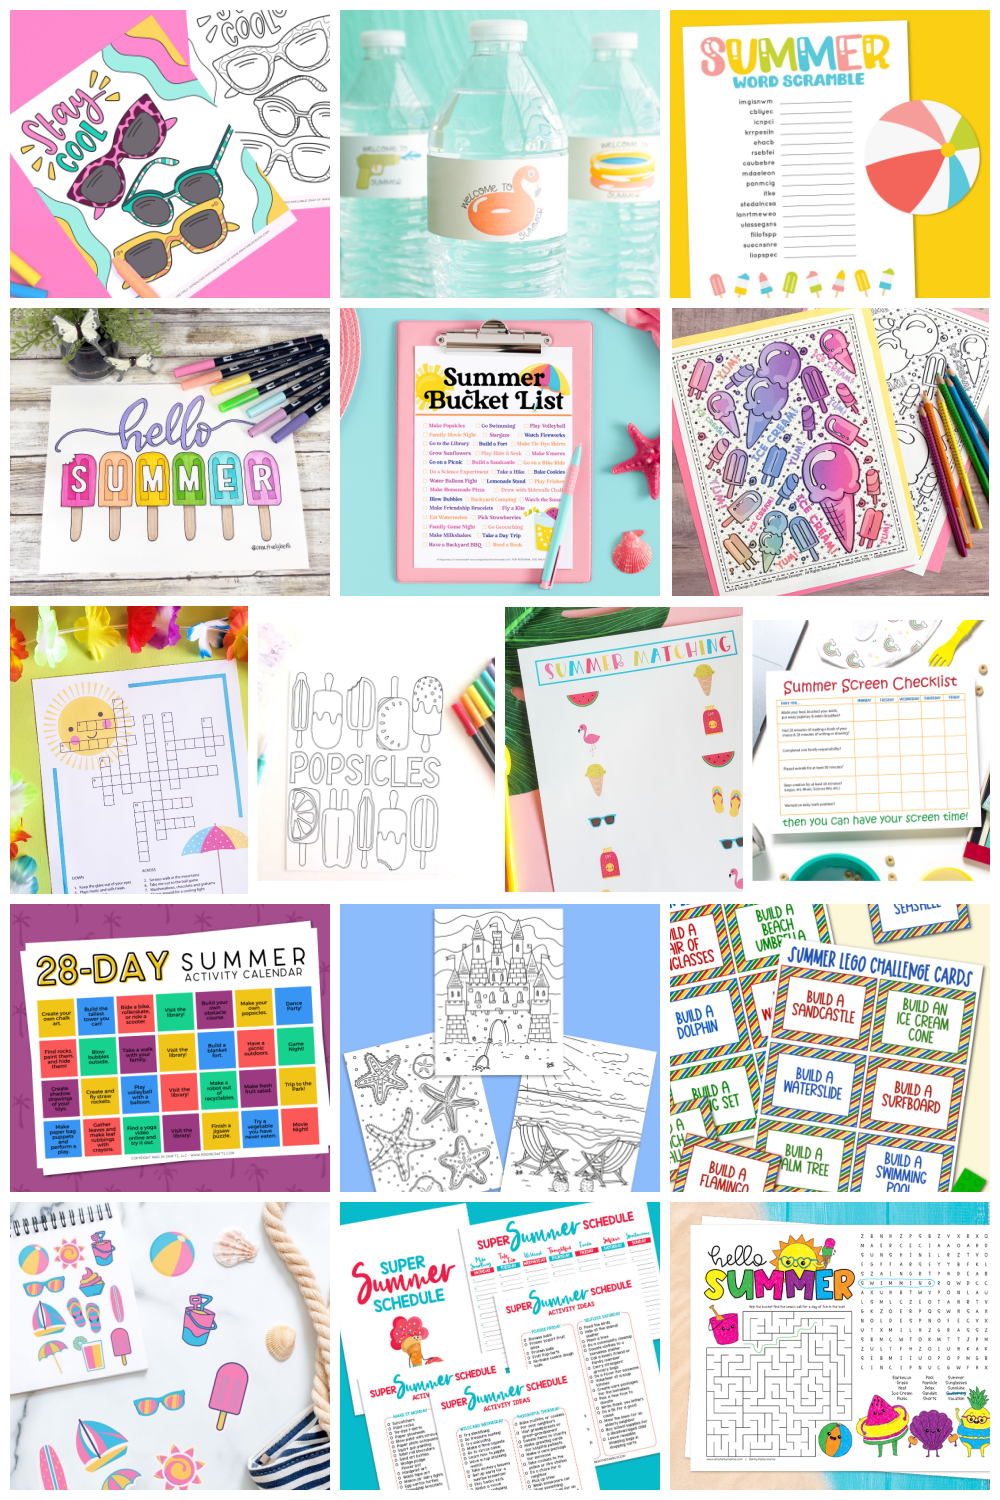 All free printables featured in this series